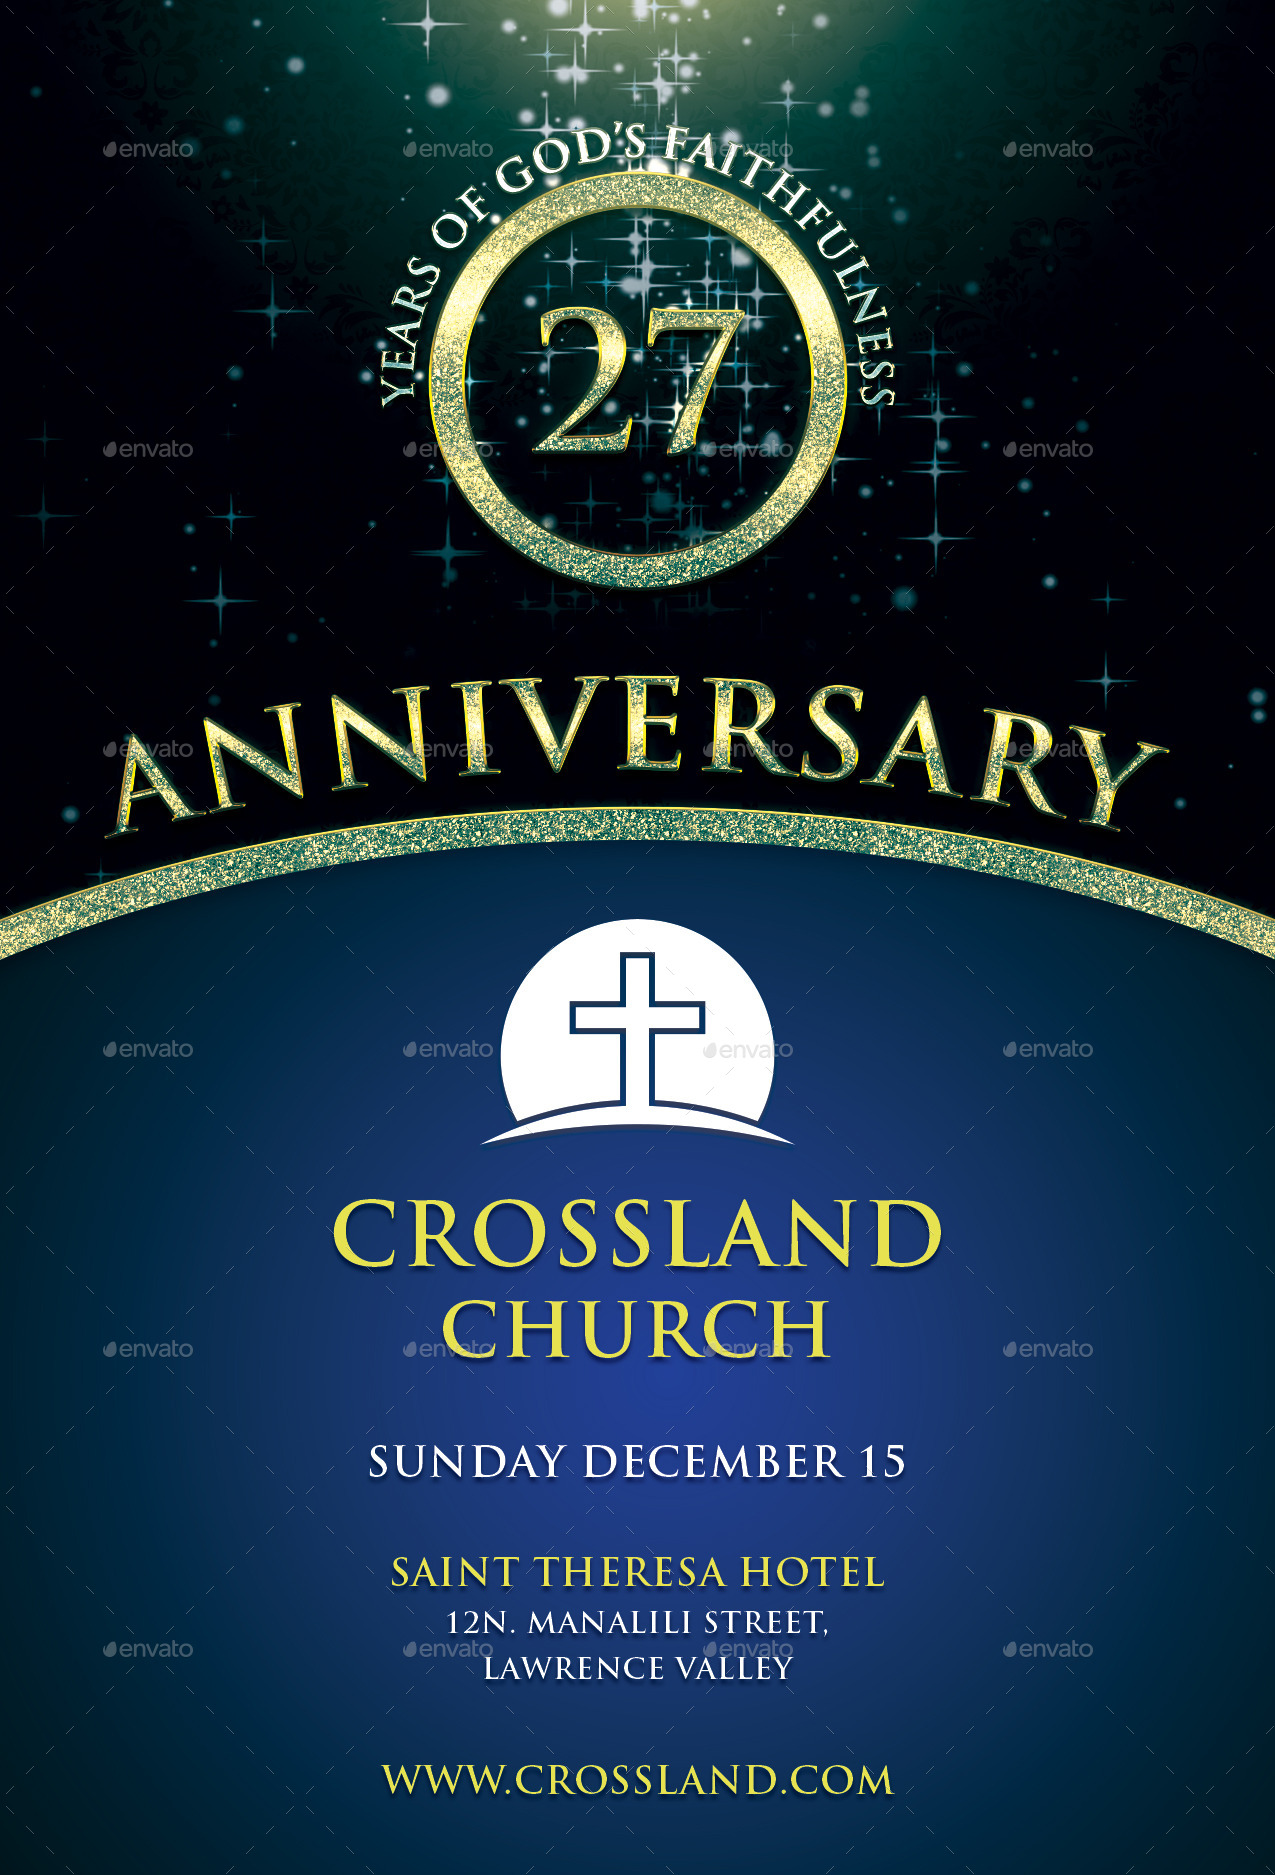 Charming Church Anniversary Flyer